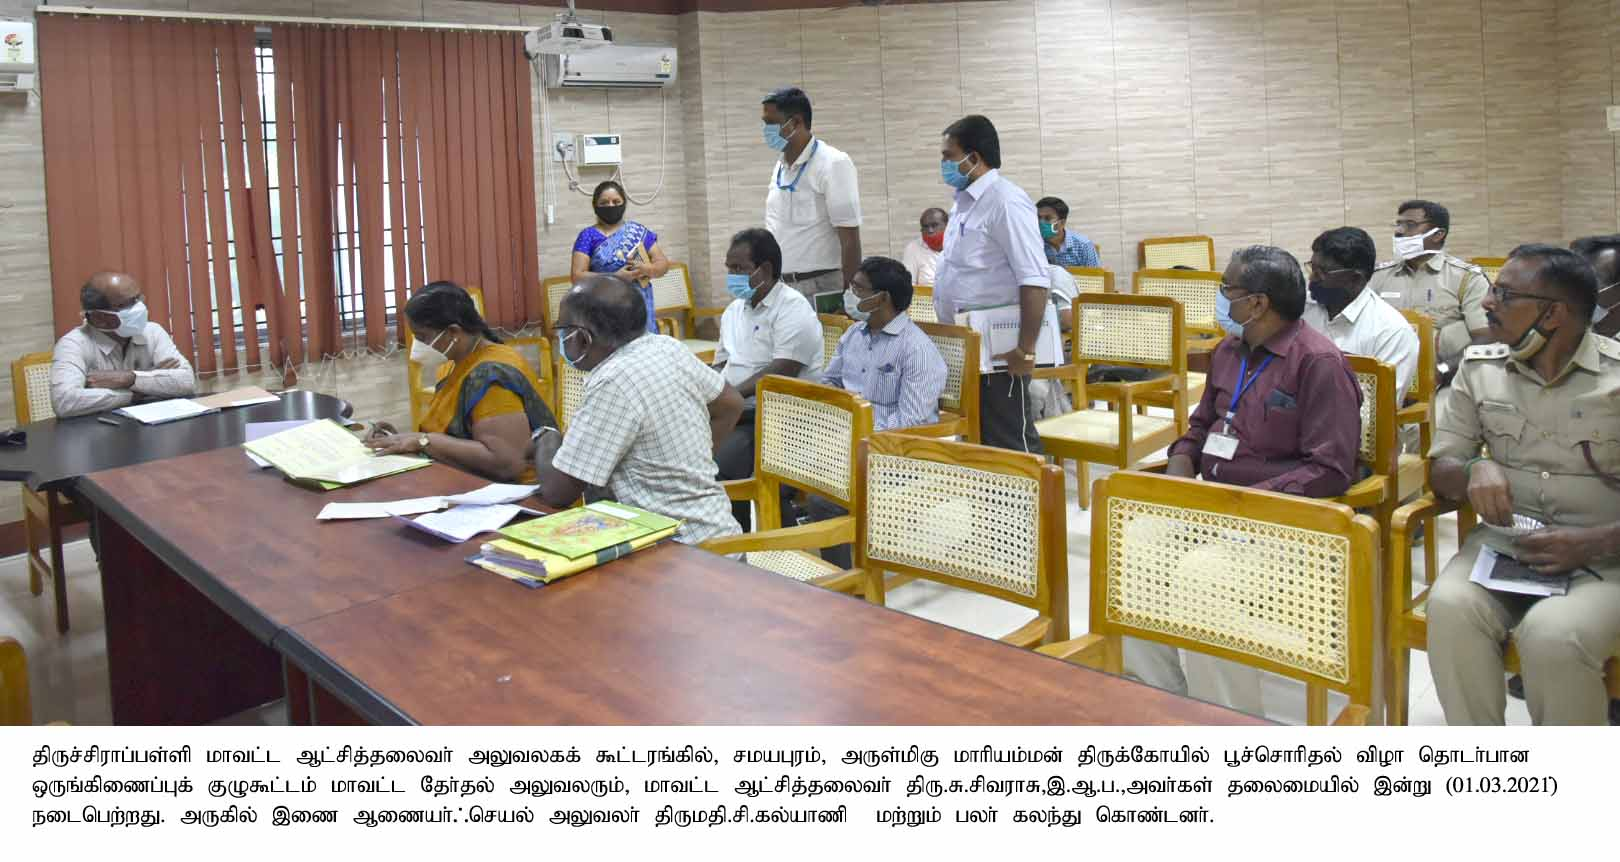 District Collector Conducted coordination Meeting with District Officials regarding Samayapuram Sri Mariamman Temple Festival on 01.03.2021